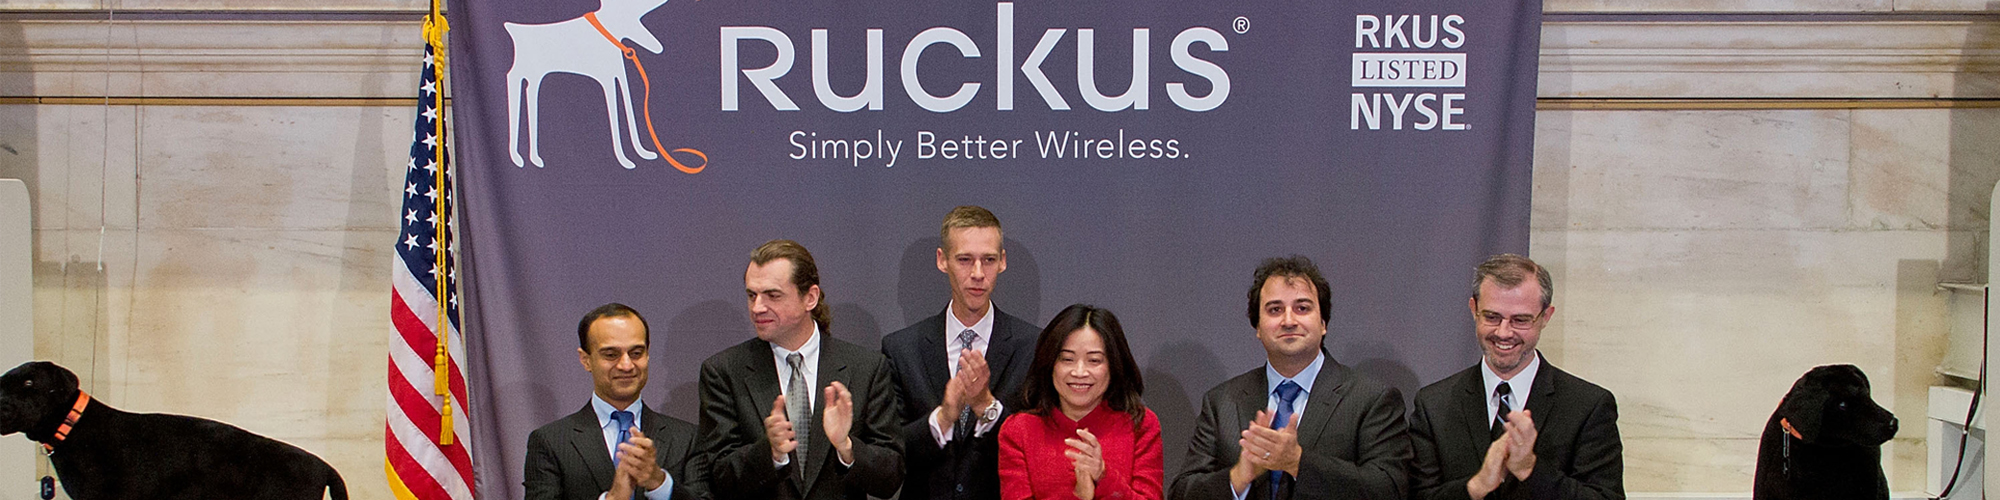 The Ruckus Wireless Story